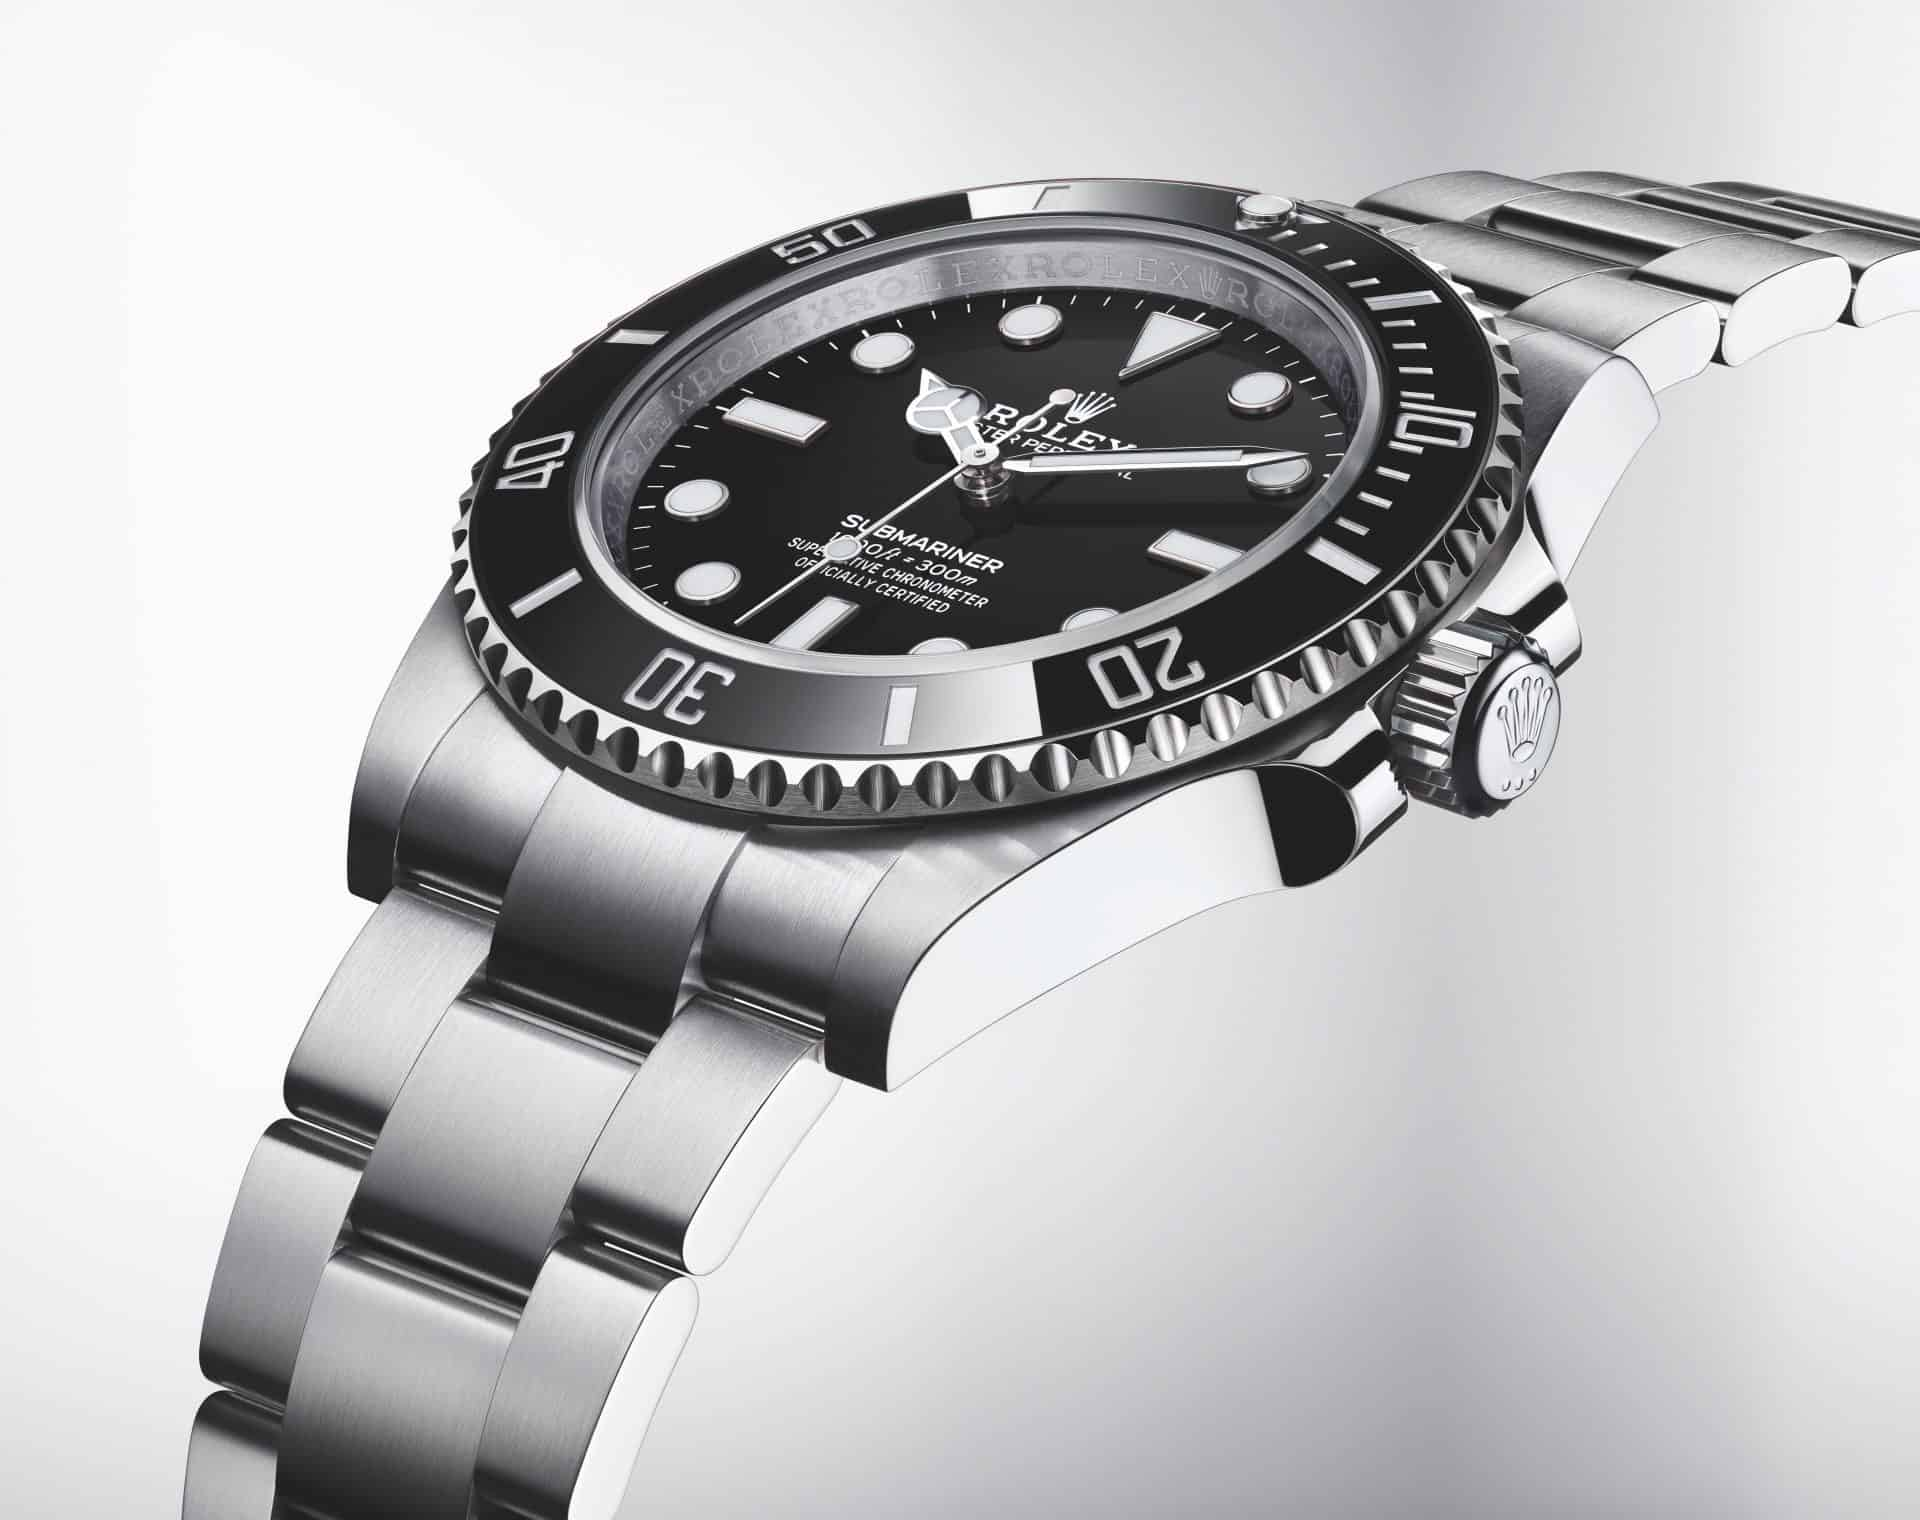 Rolex Oyster Perpetual Submariner Referenz 124060 0001 2001ac 003